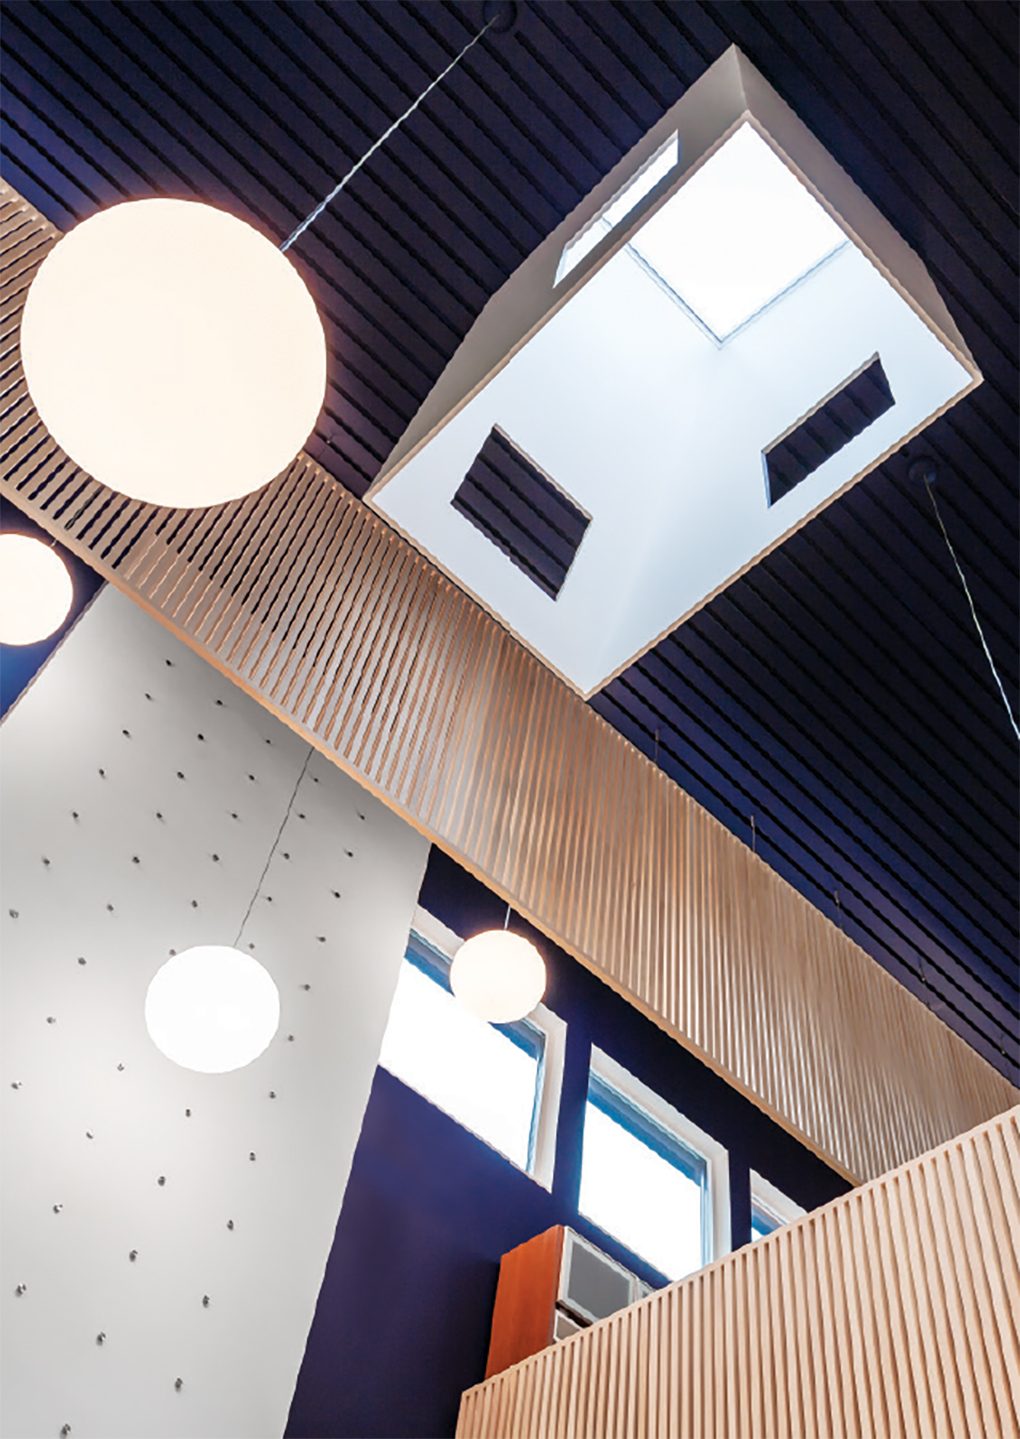 The holes punched in the skyboxes create a play of light and shadow throughout the day.